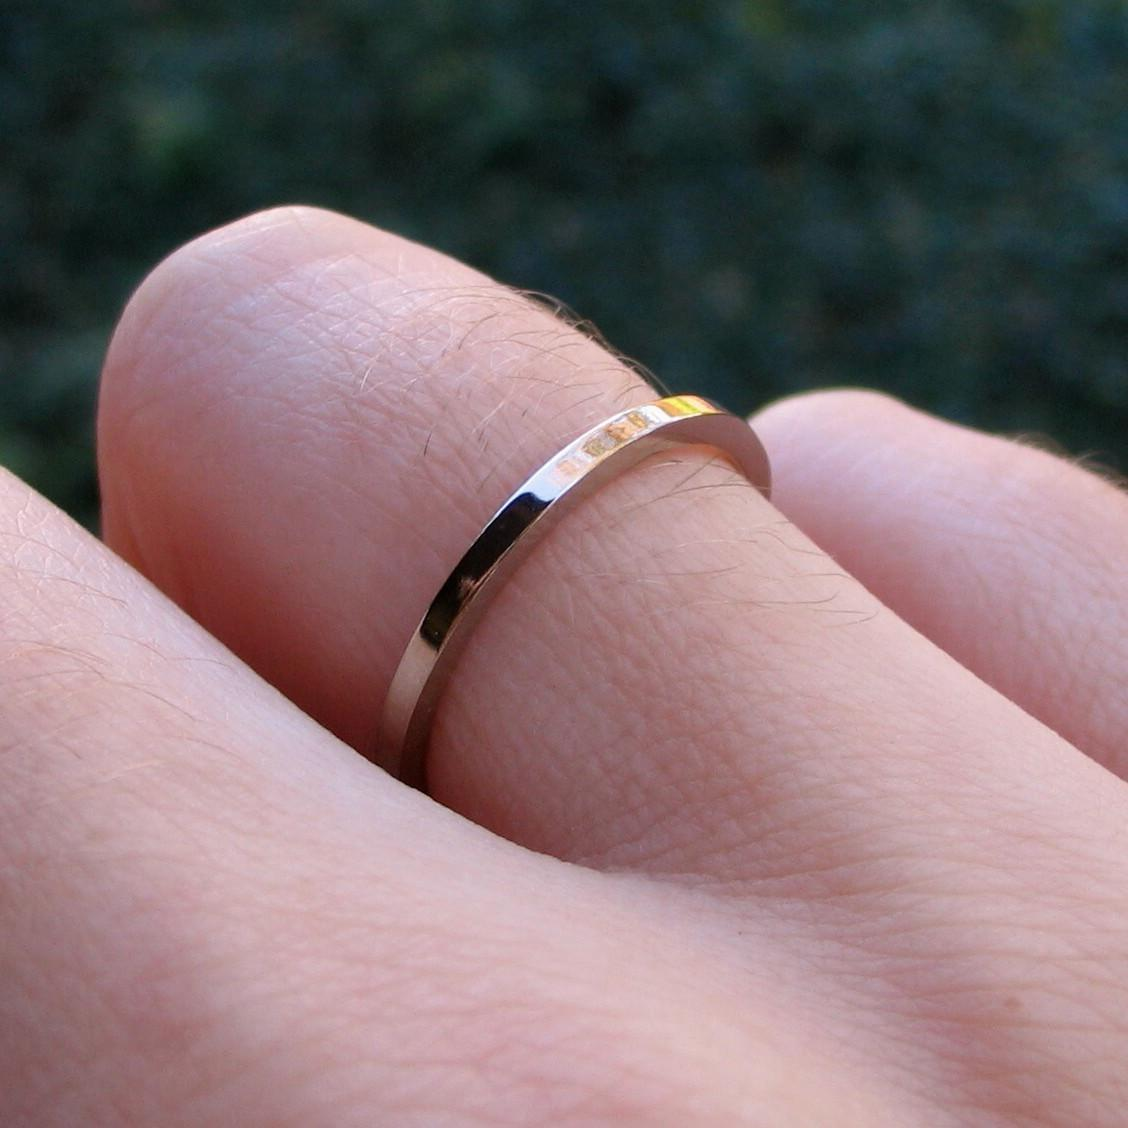 Palladium White Gold Wedding Band - Size 6.5. From SoloArtworks